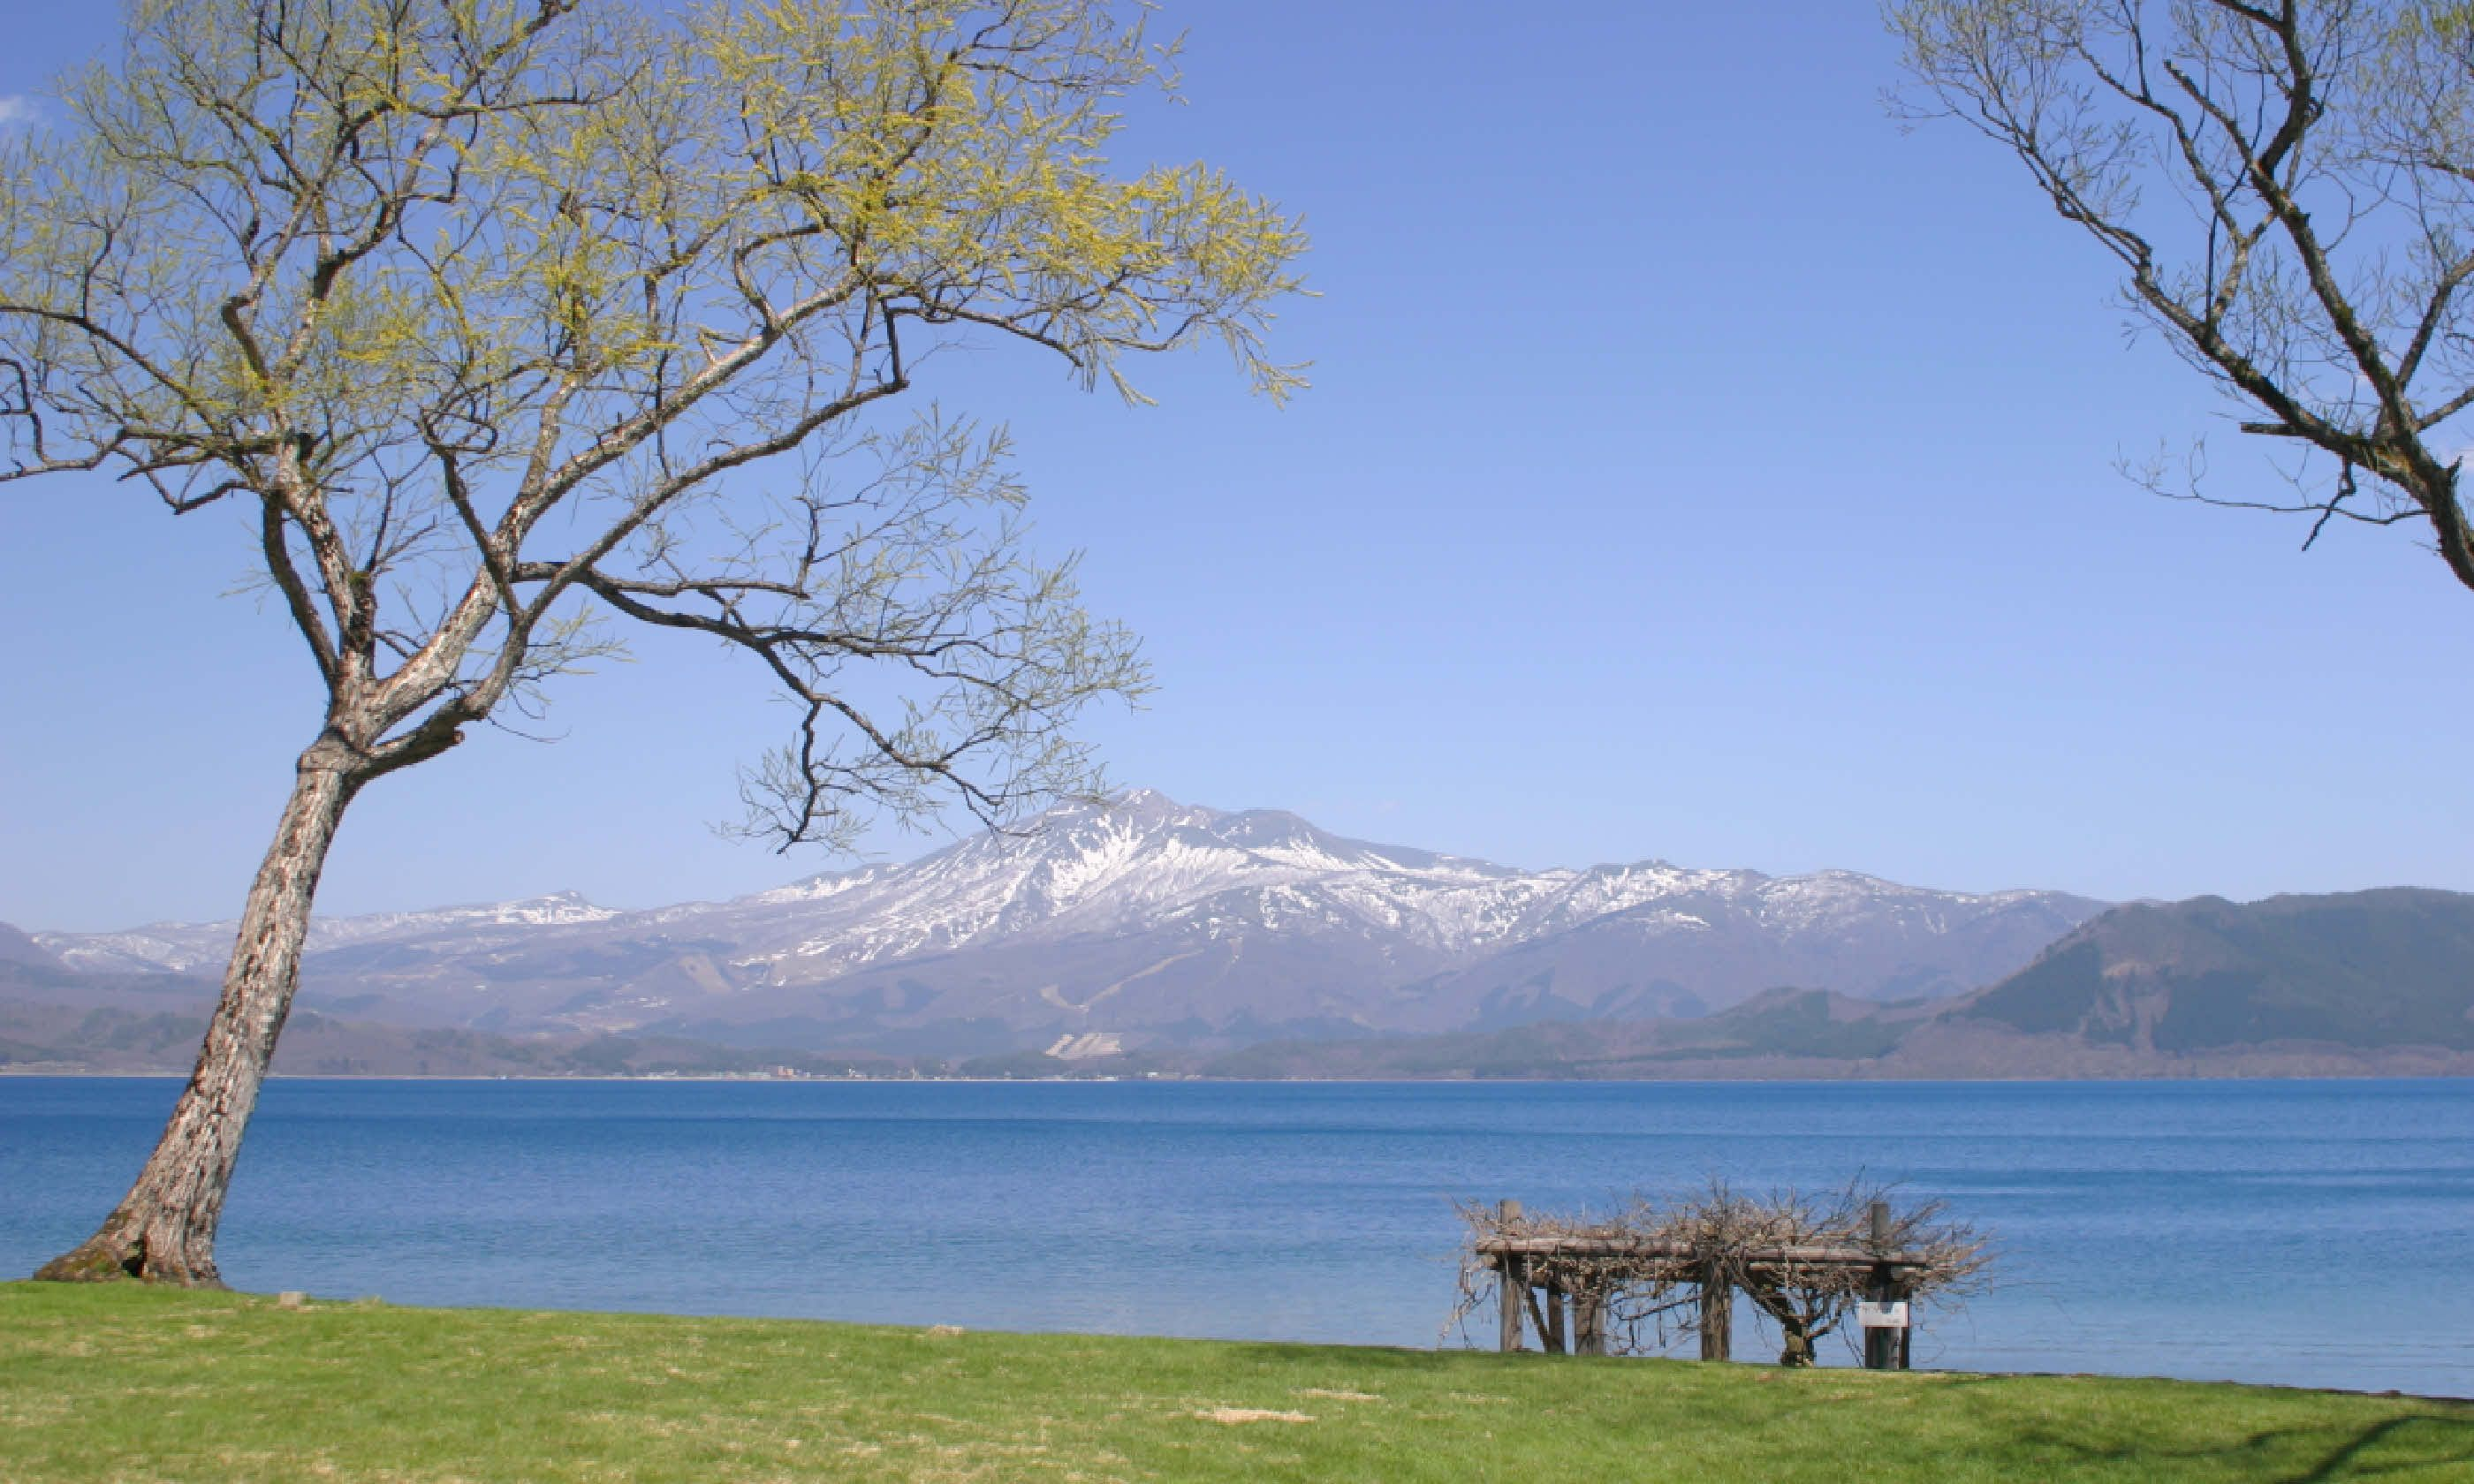 Mt. Komagatake from the shore of Tazawa lake (Shutterstock)